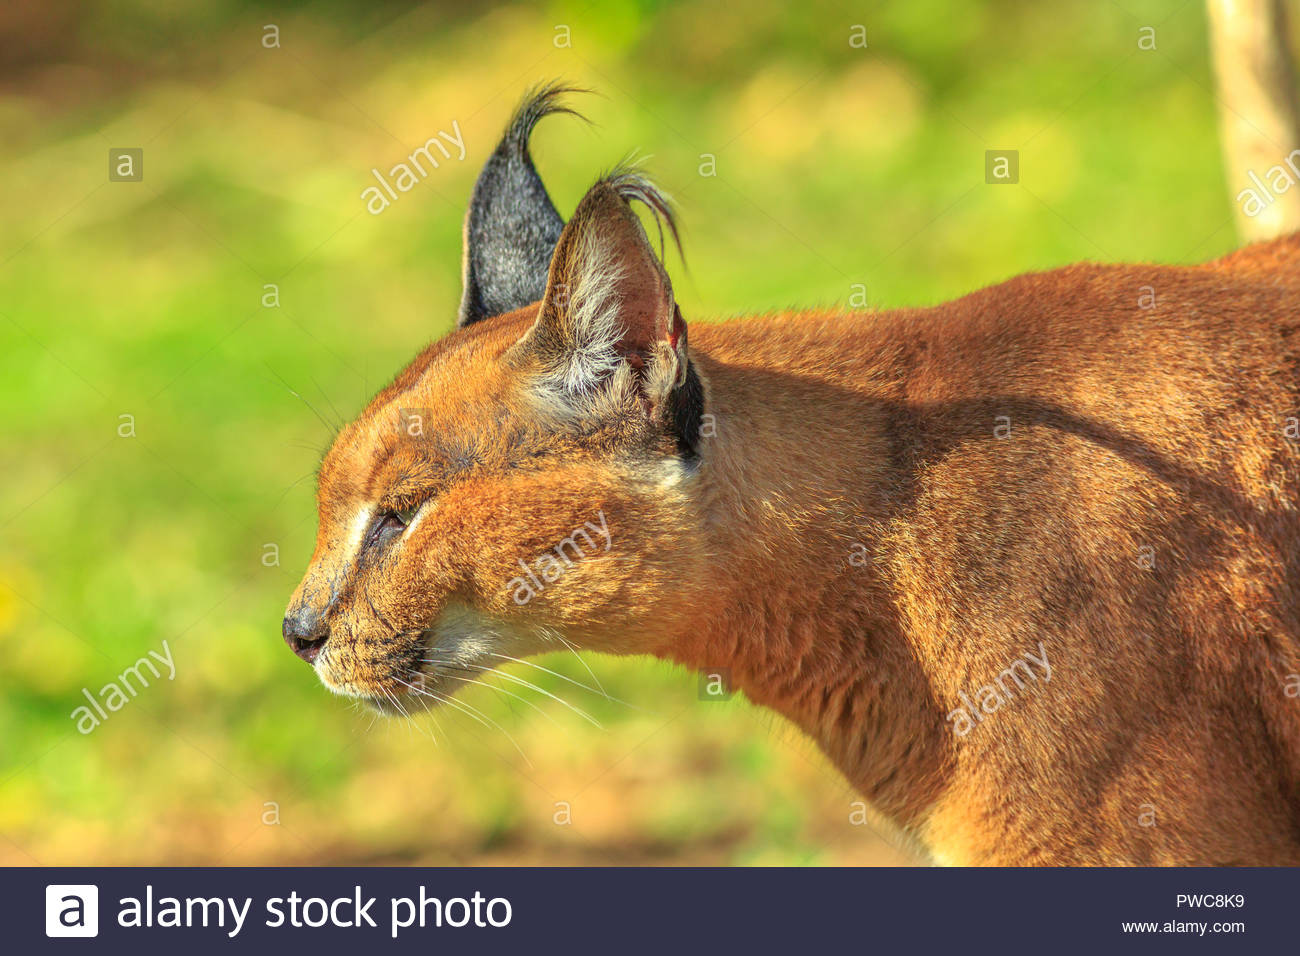 Closeup of adult Caracal or African lynx walking outdoor in 1300x956